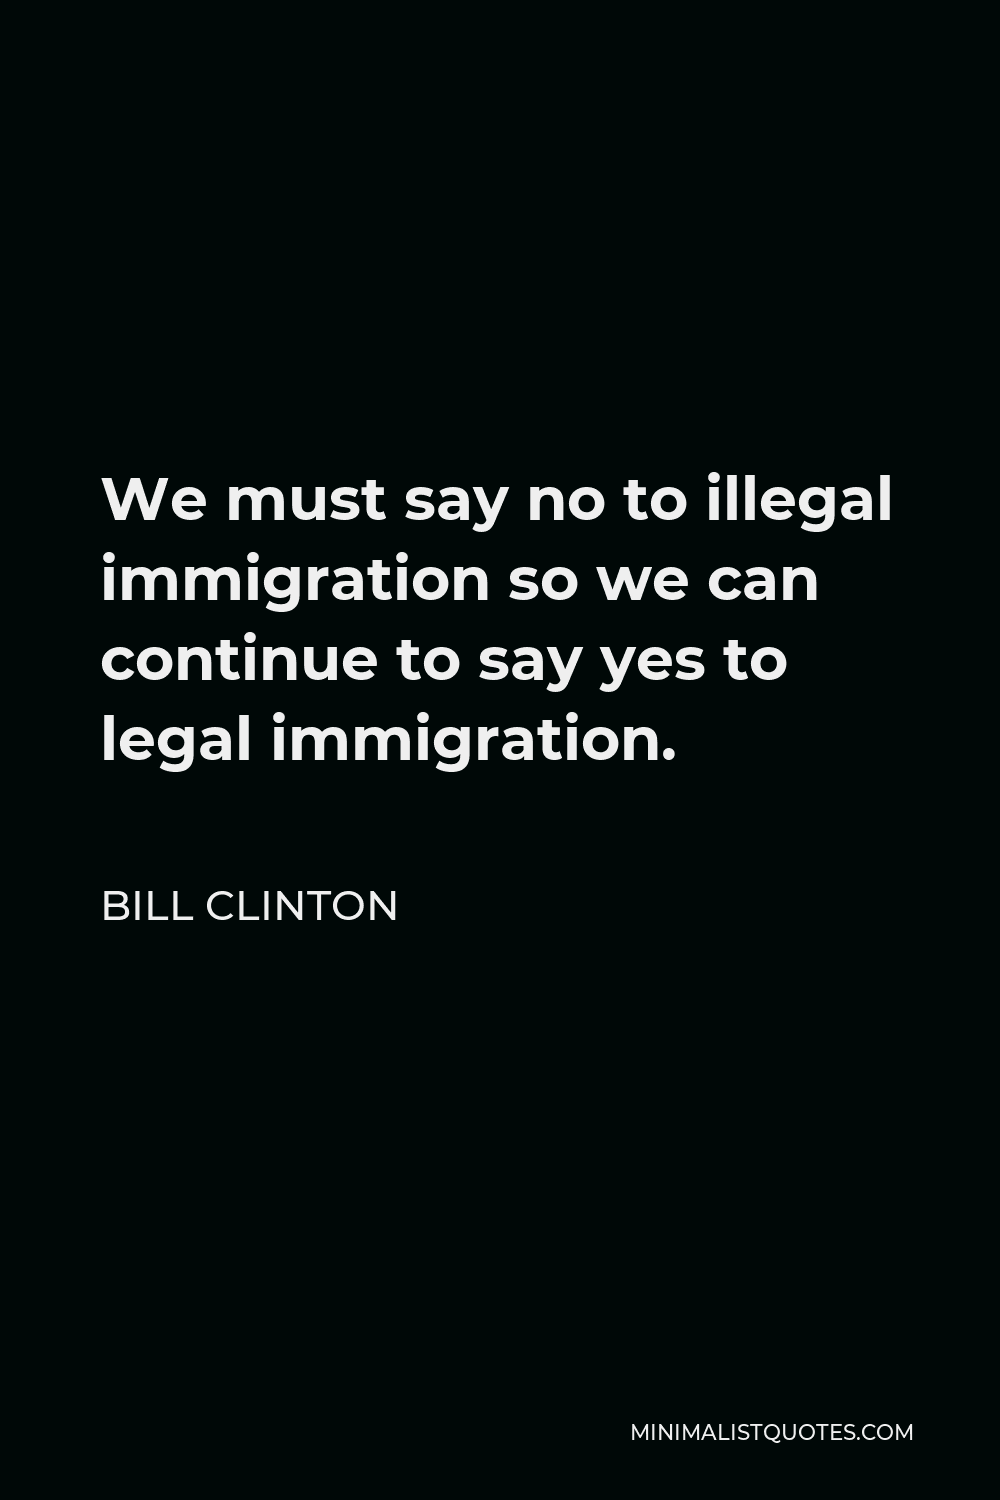 Bill Clinton Quote - We must say no to illegal immigration so we can continue to say yes to legal immigration.